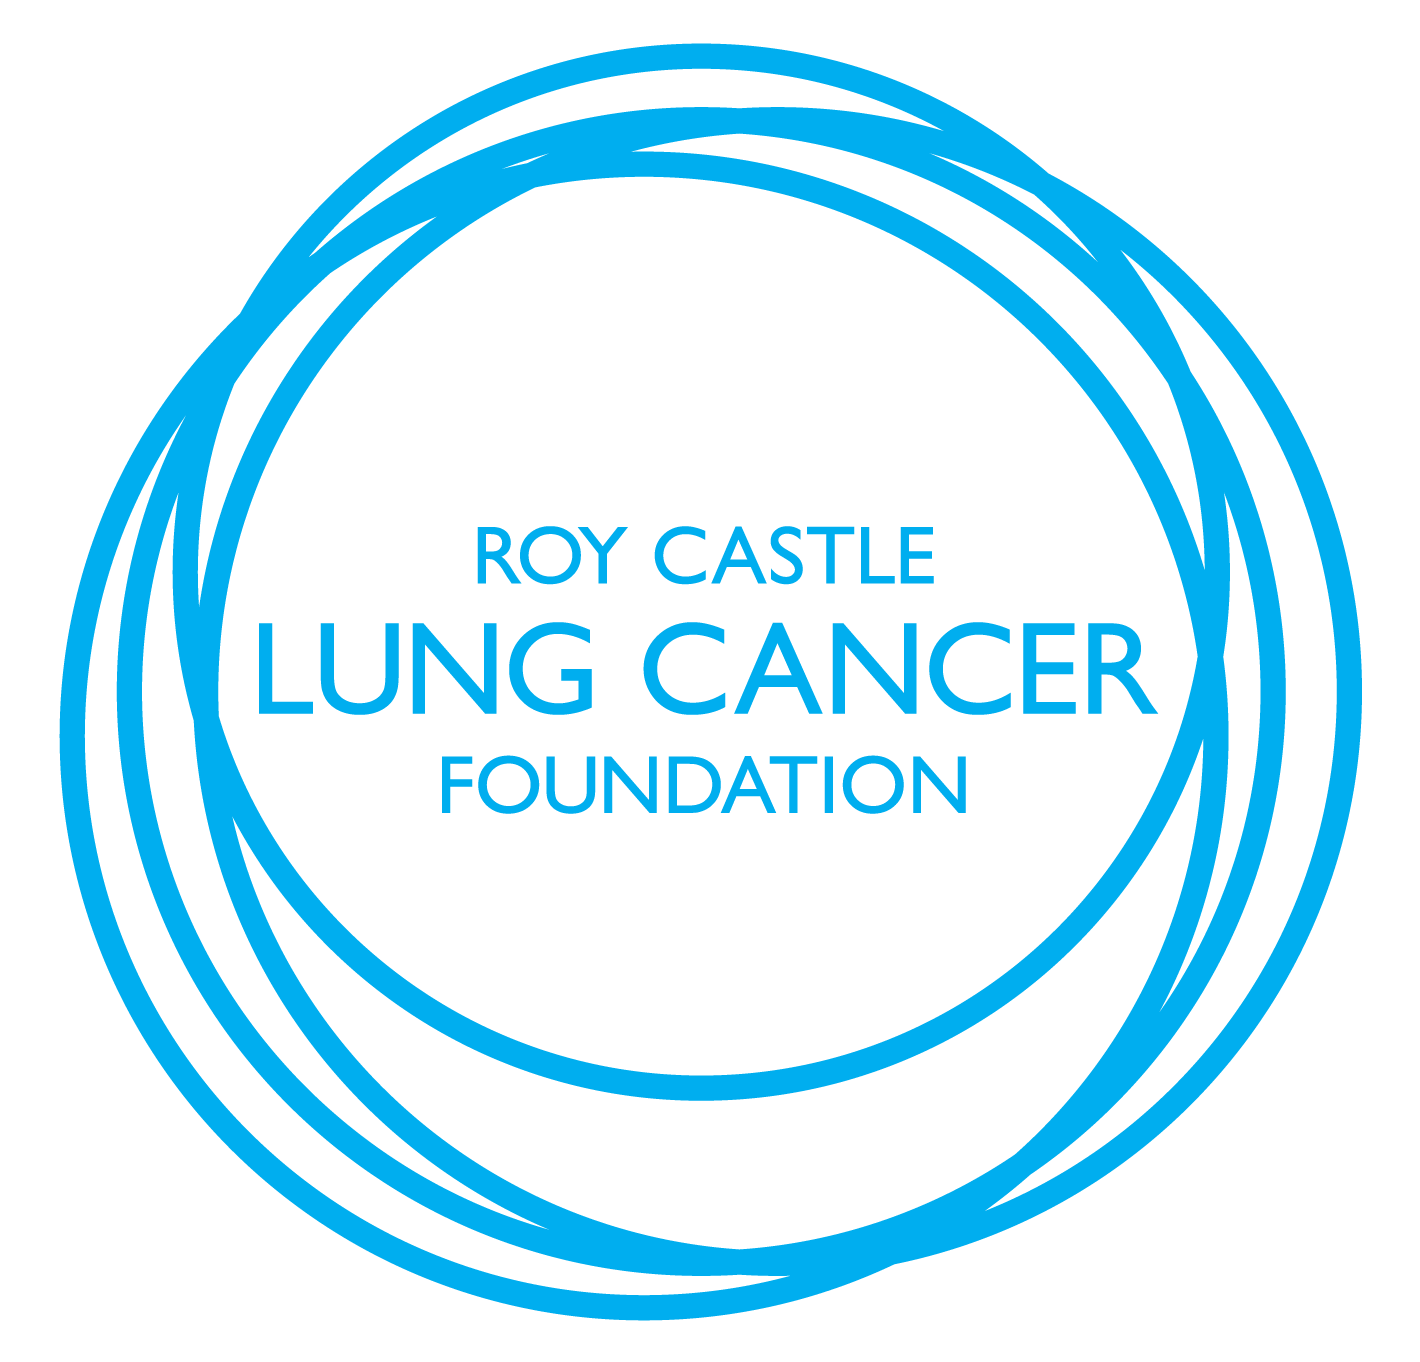 Roy Castle Lung Cancer Foundation - ecofleet